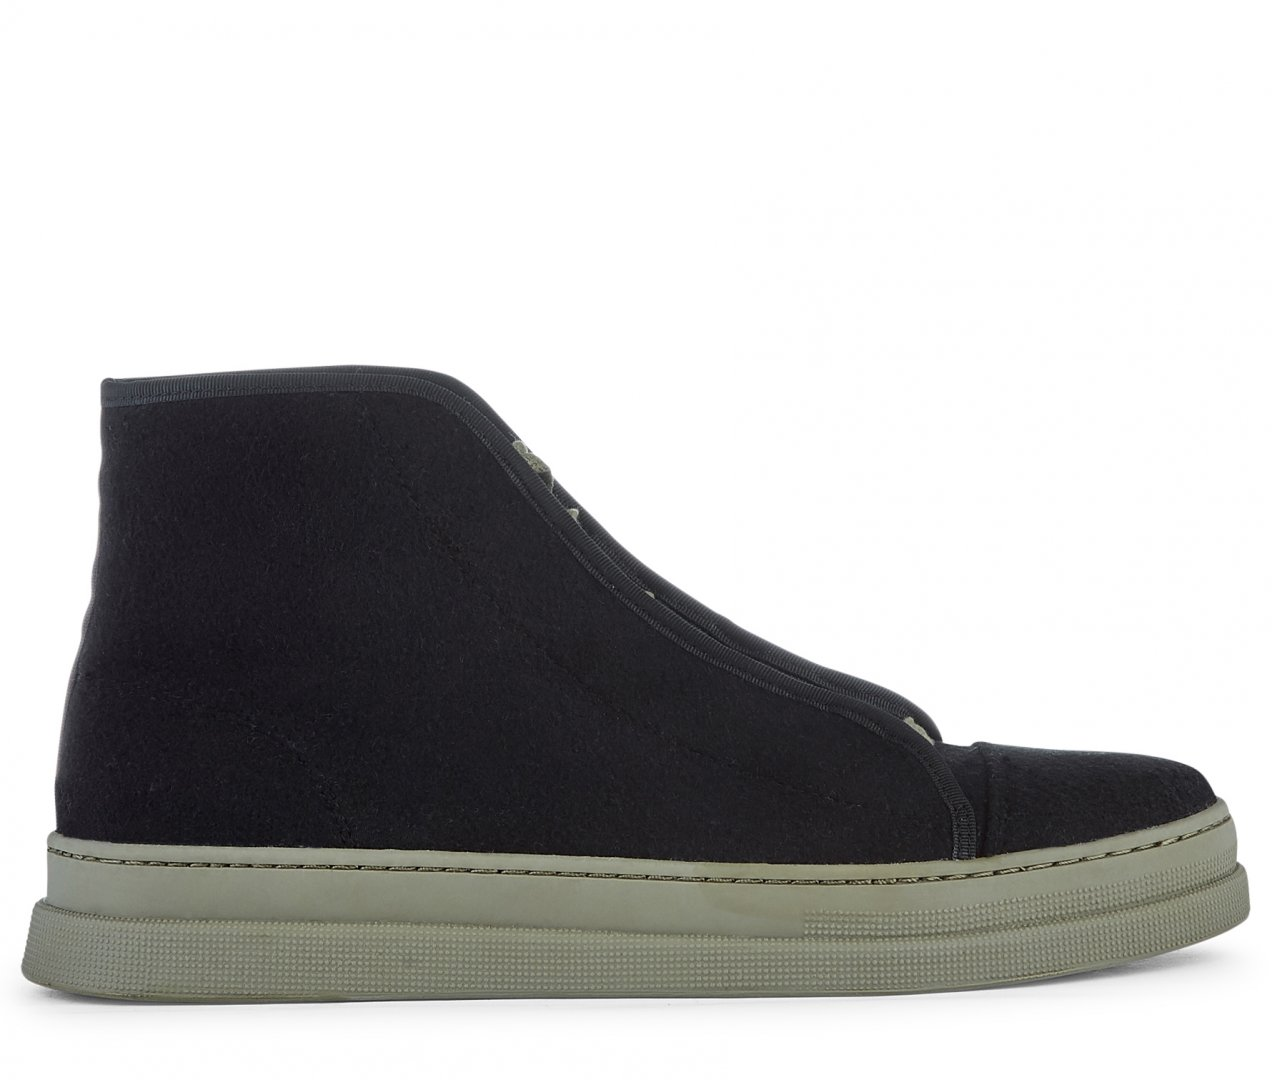 Hudson Shoes Berwick Felt Black Sneaker